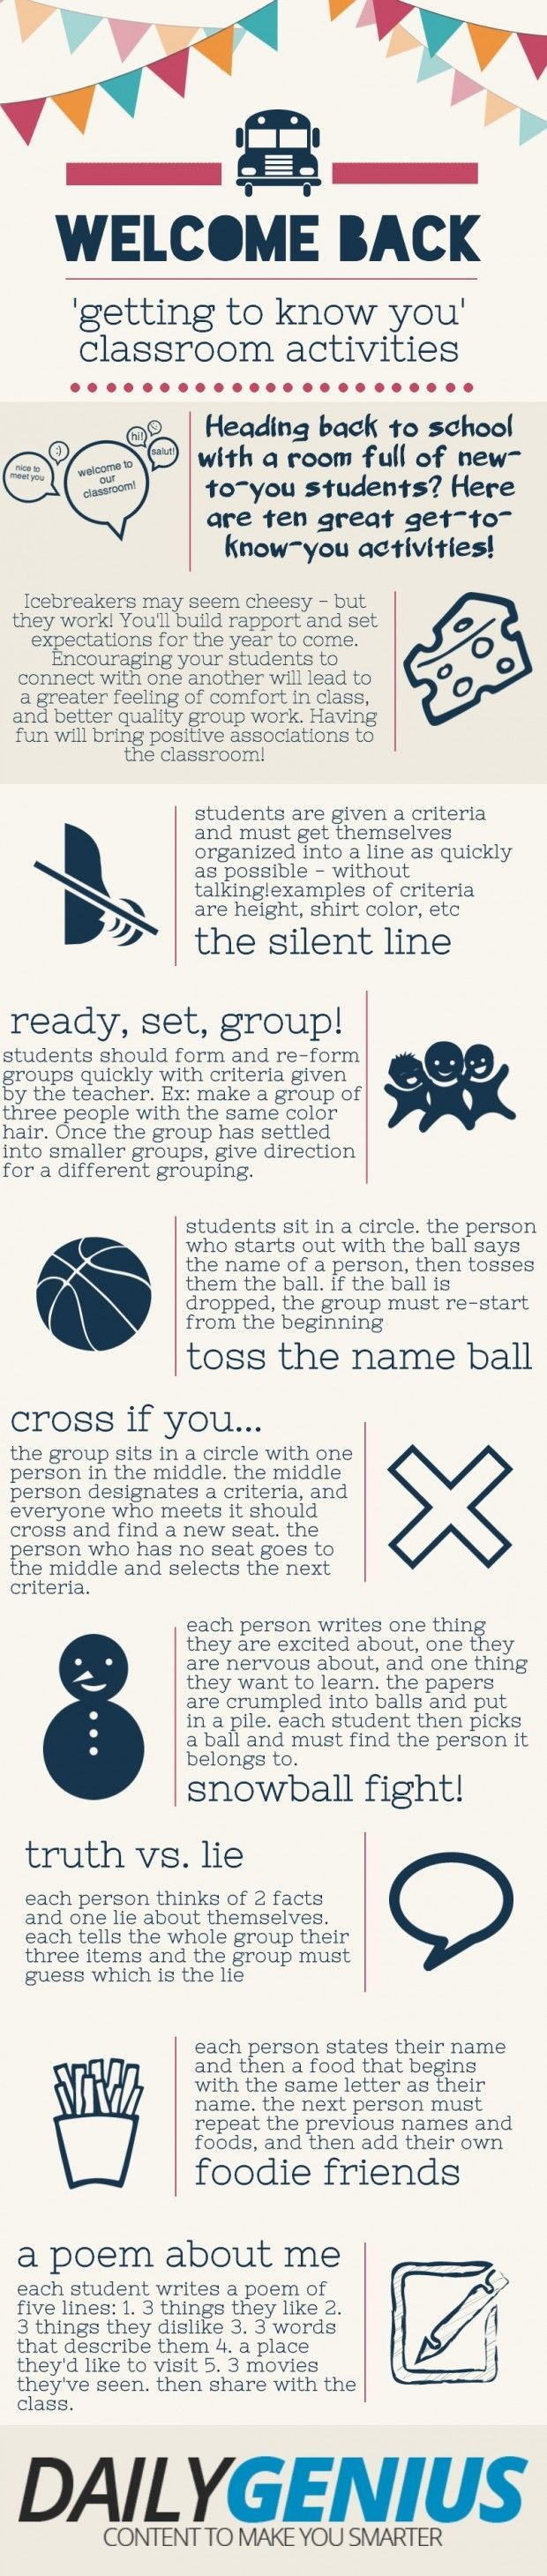 8 Effective Ways To Get To Know Your Students. Great for back-to-school activities.